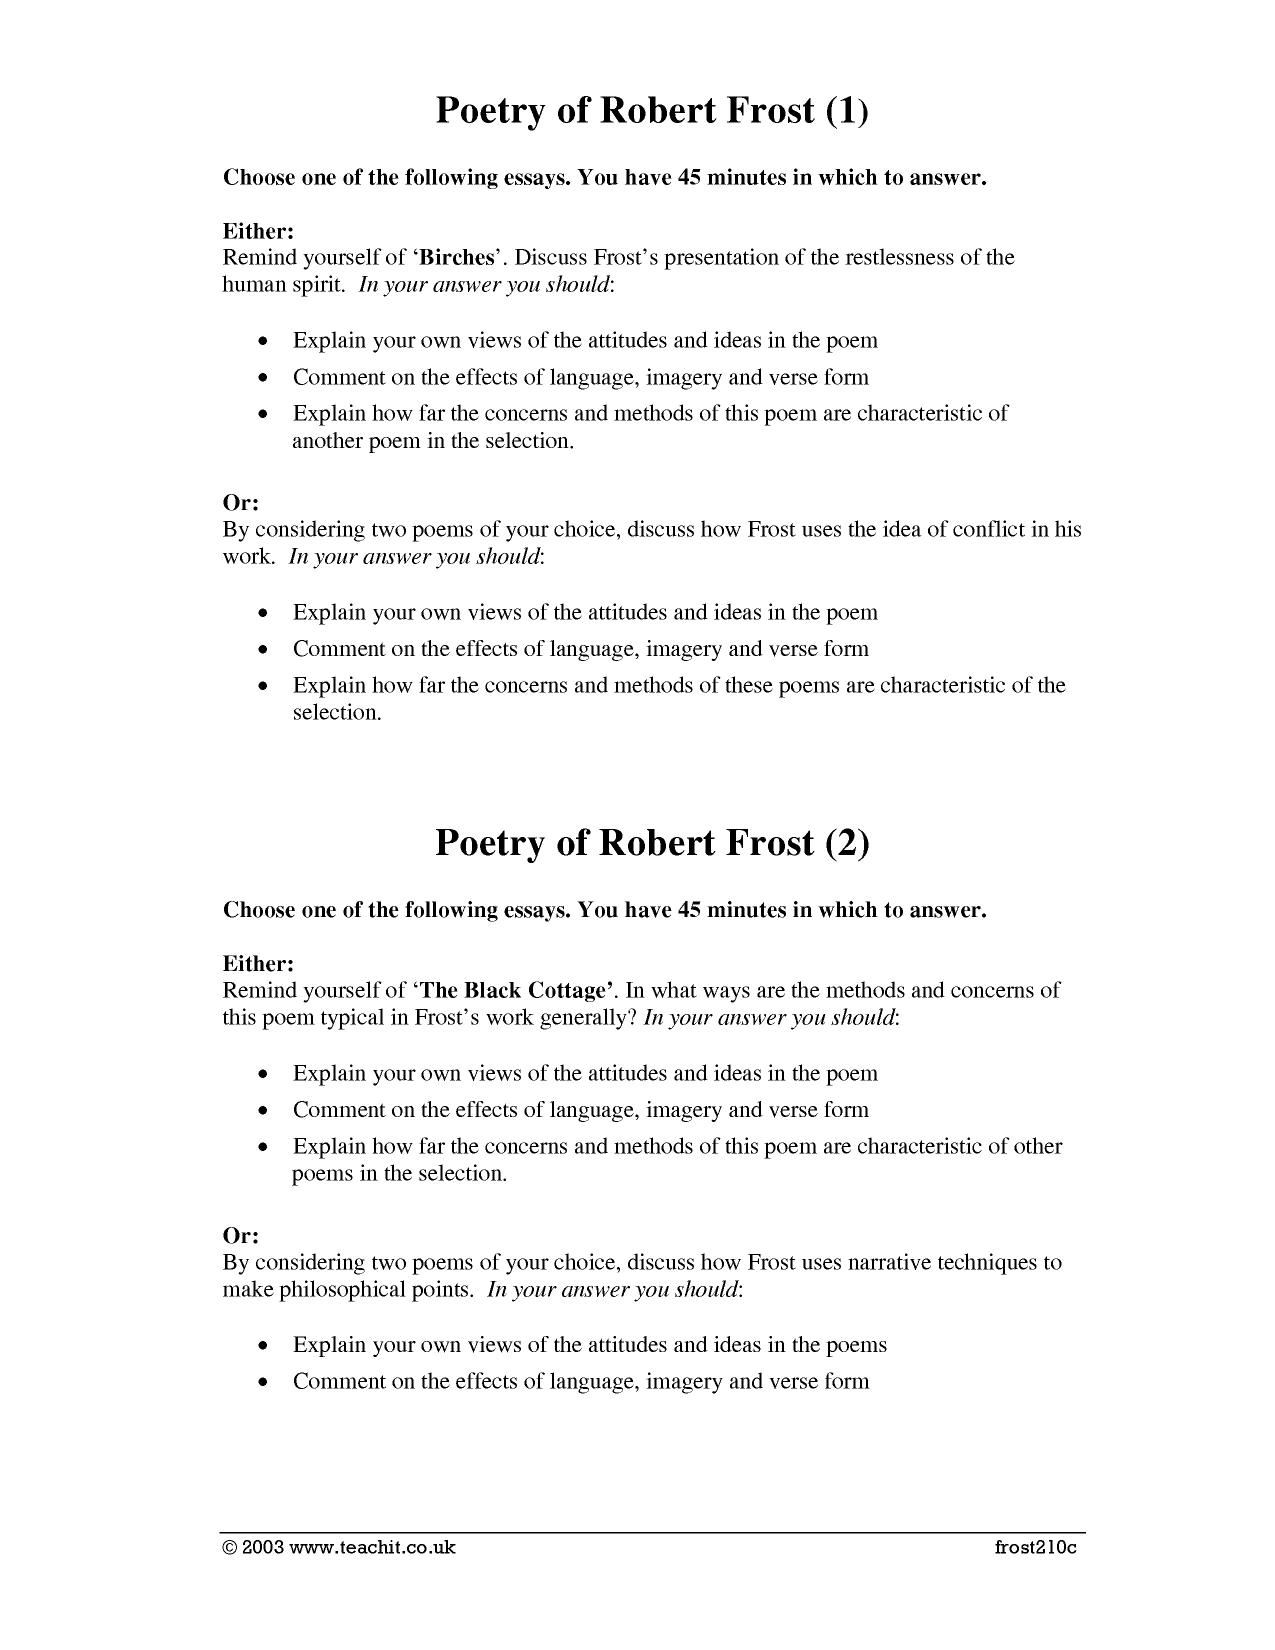 poetry robert frost essay Famous poetry - robert frost: poems study guide contains a biography of poet robert frost, literature essays, quiz questions, major themes, characters, and a full summary and analysis of his.